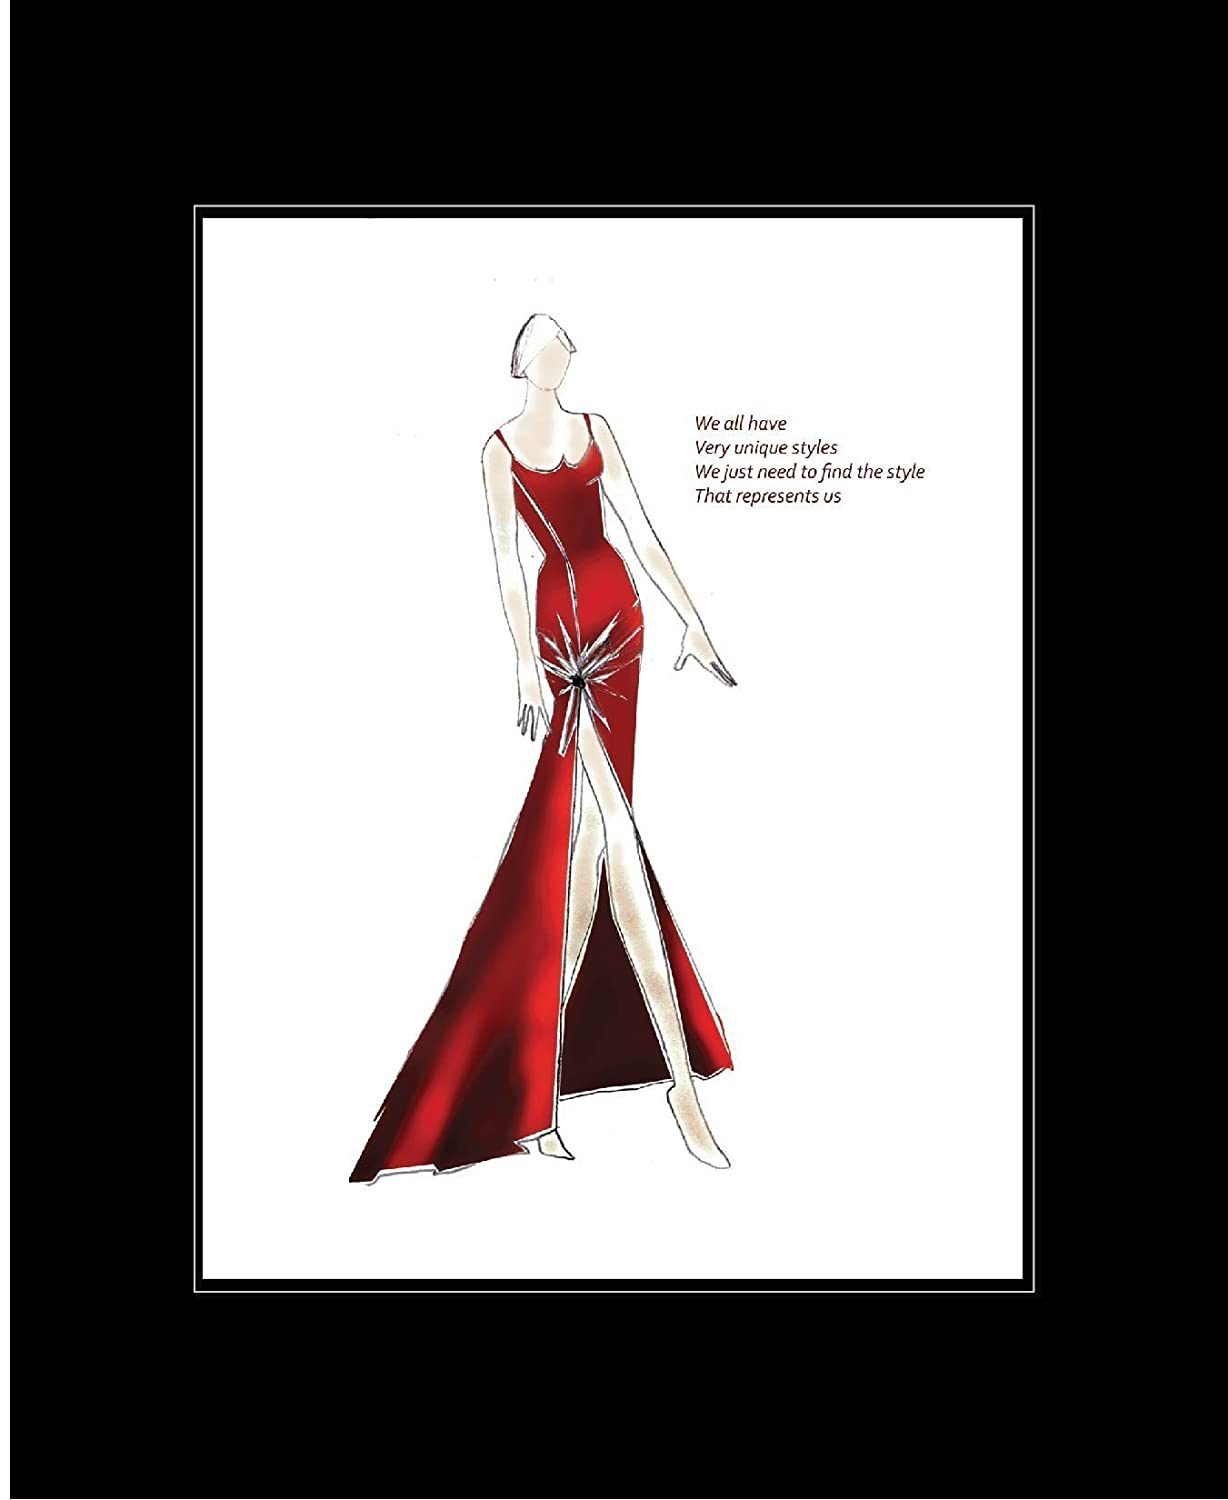 Amazon Fashion Illustration With Inspirational Quotes In A